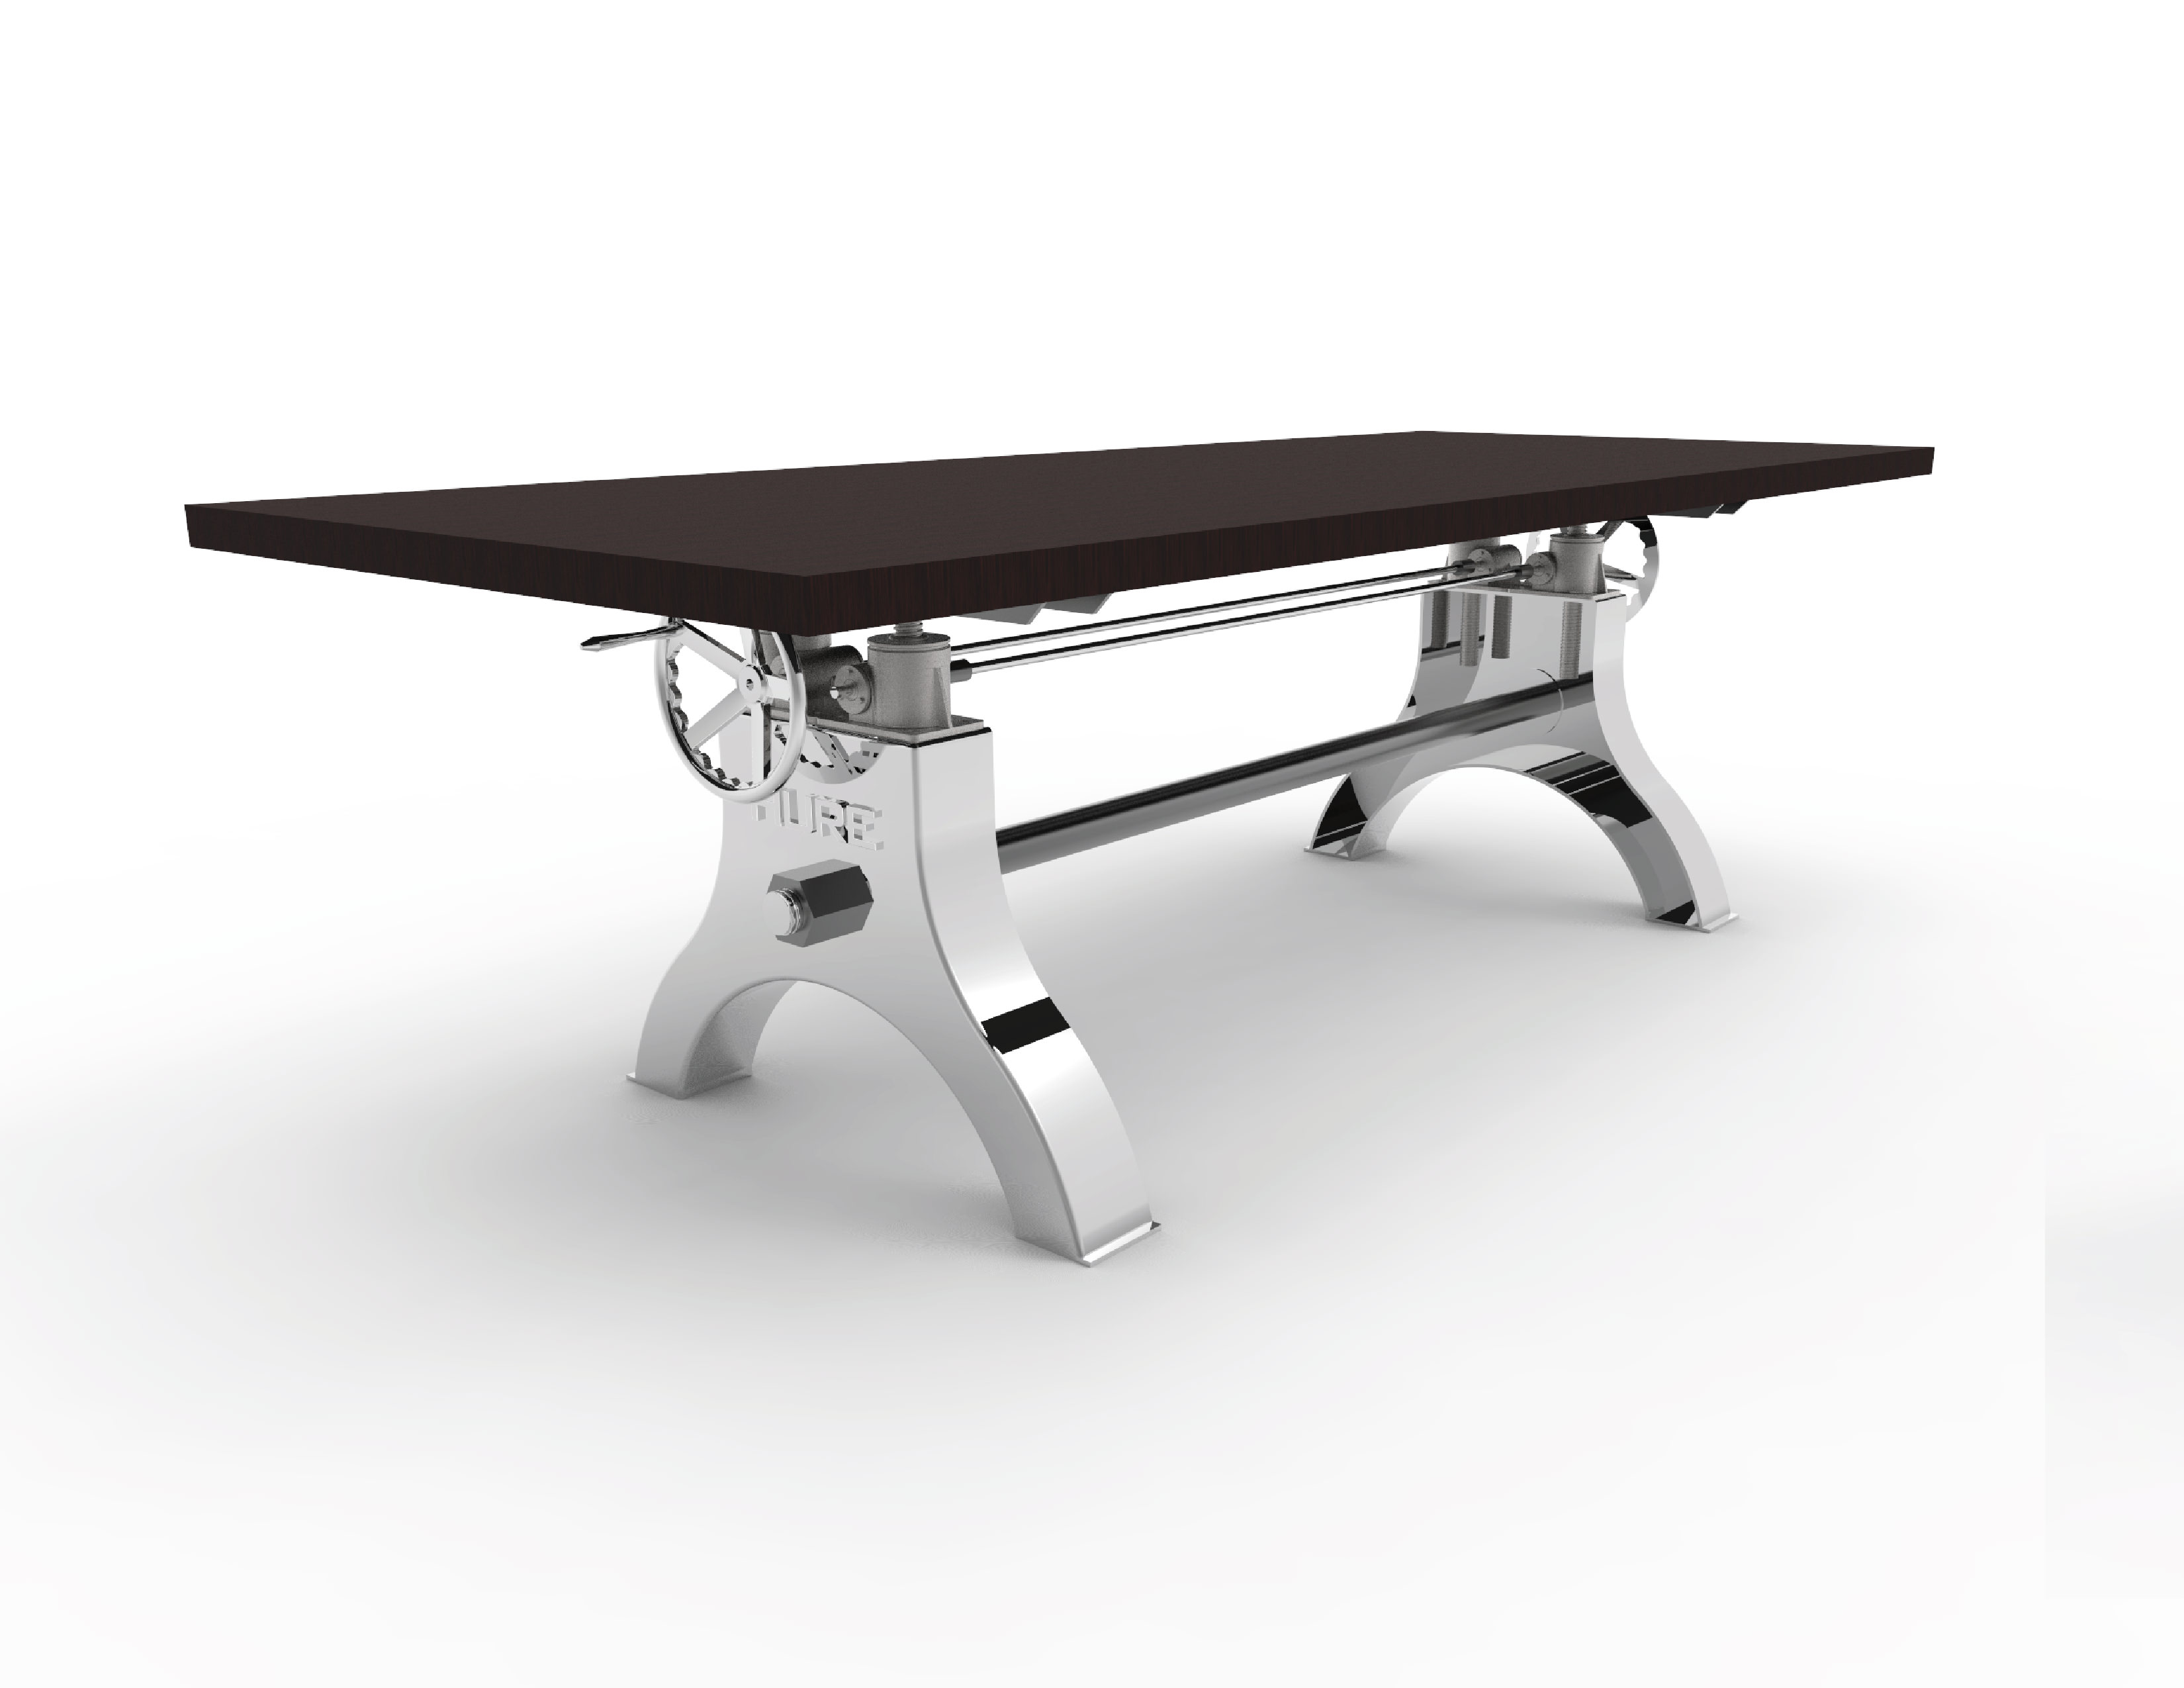 Hure Table Base Hure Crank table with polished base and black wood top - Model #CPT25